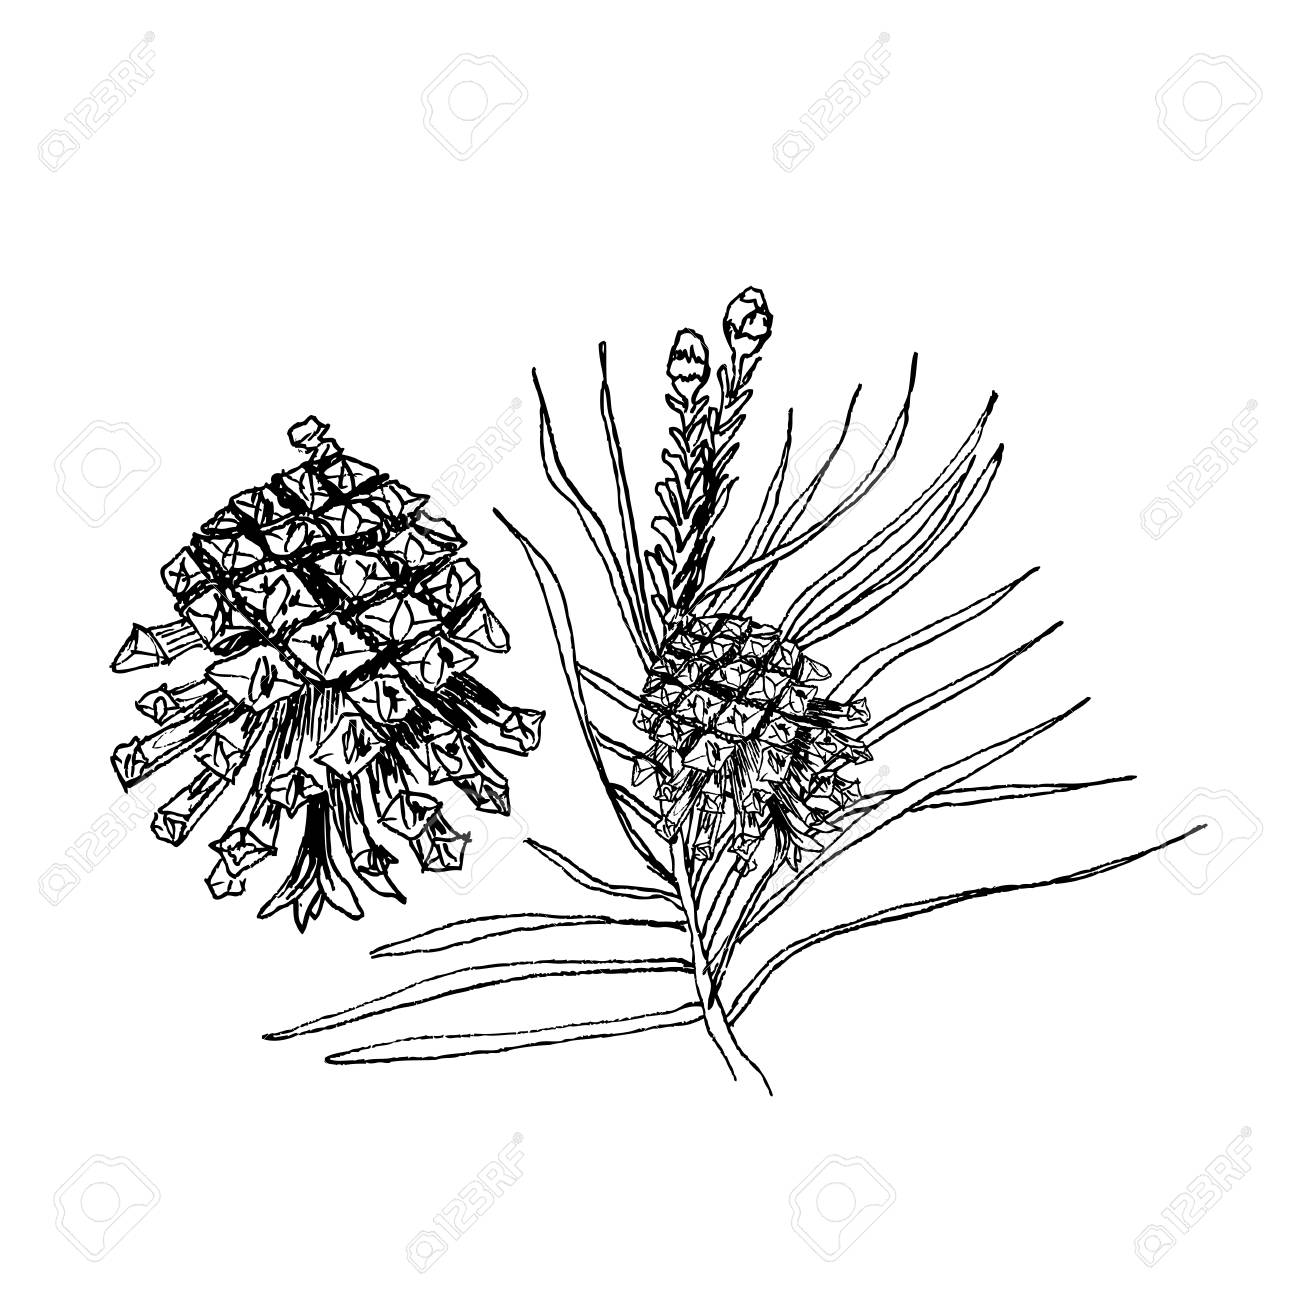 1300x1300 Pinus Sylvestris Tree. Branch, Pine And Cones In Black Isolated